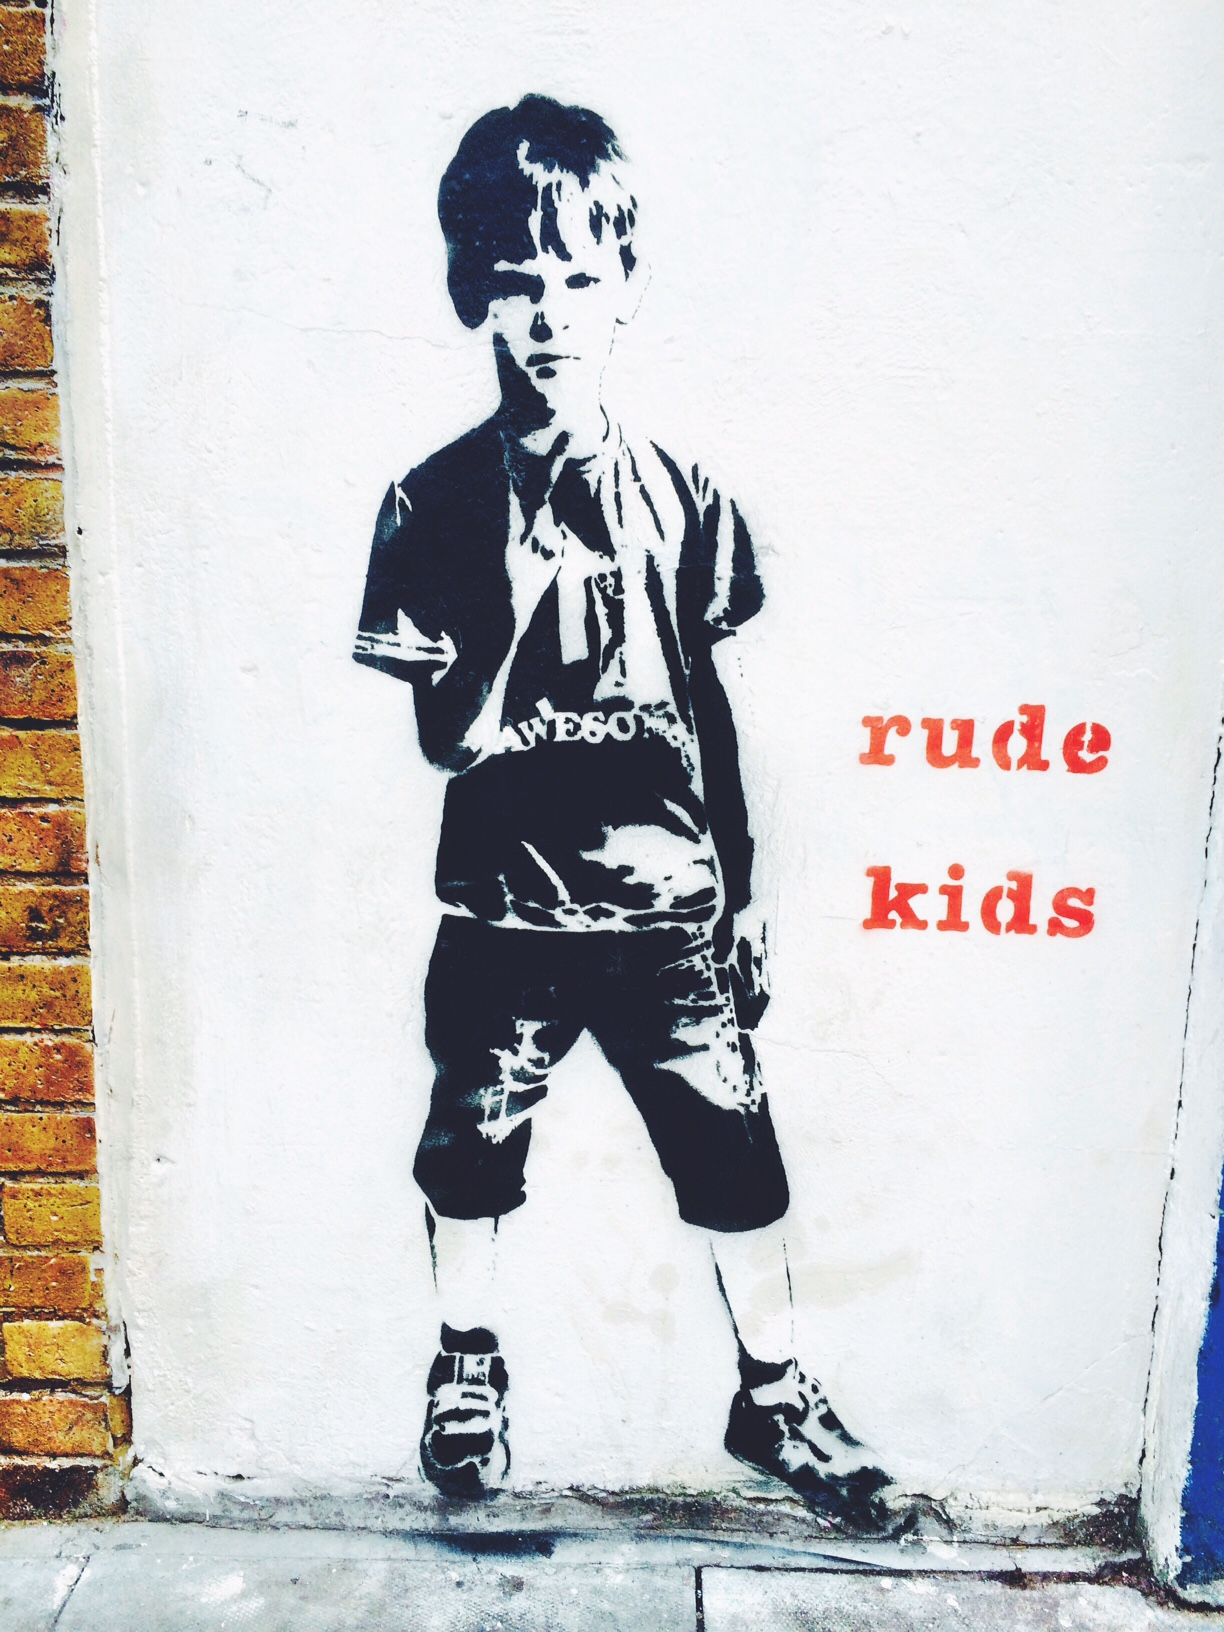 rude kids graffiti redchurch street